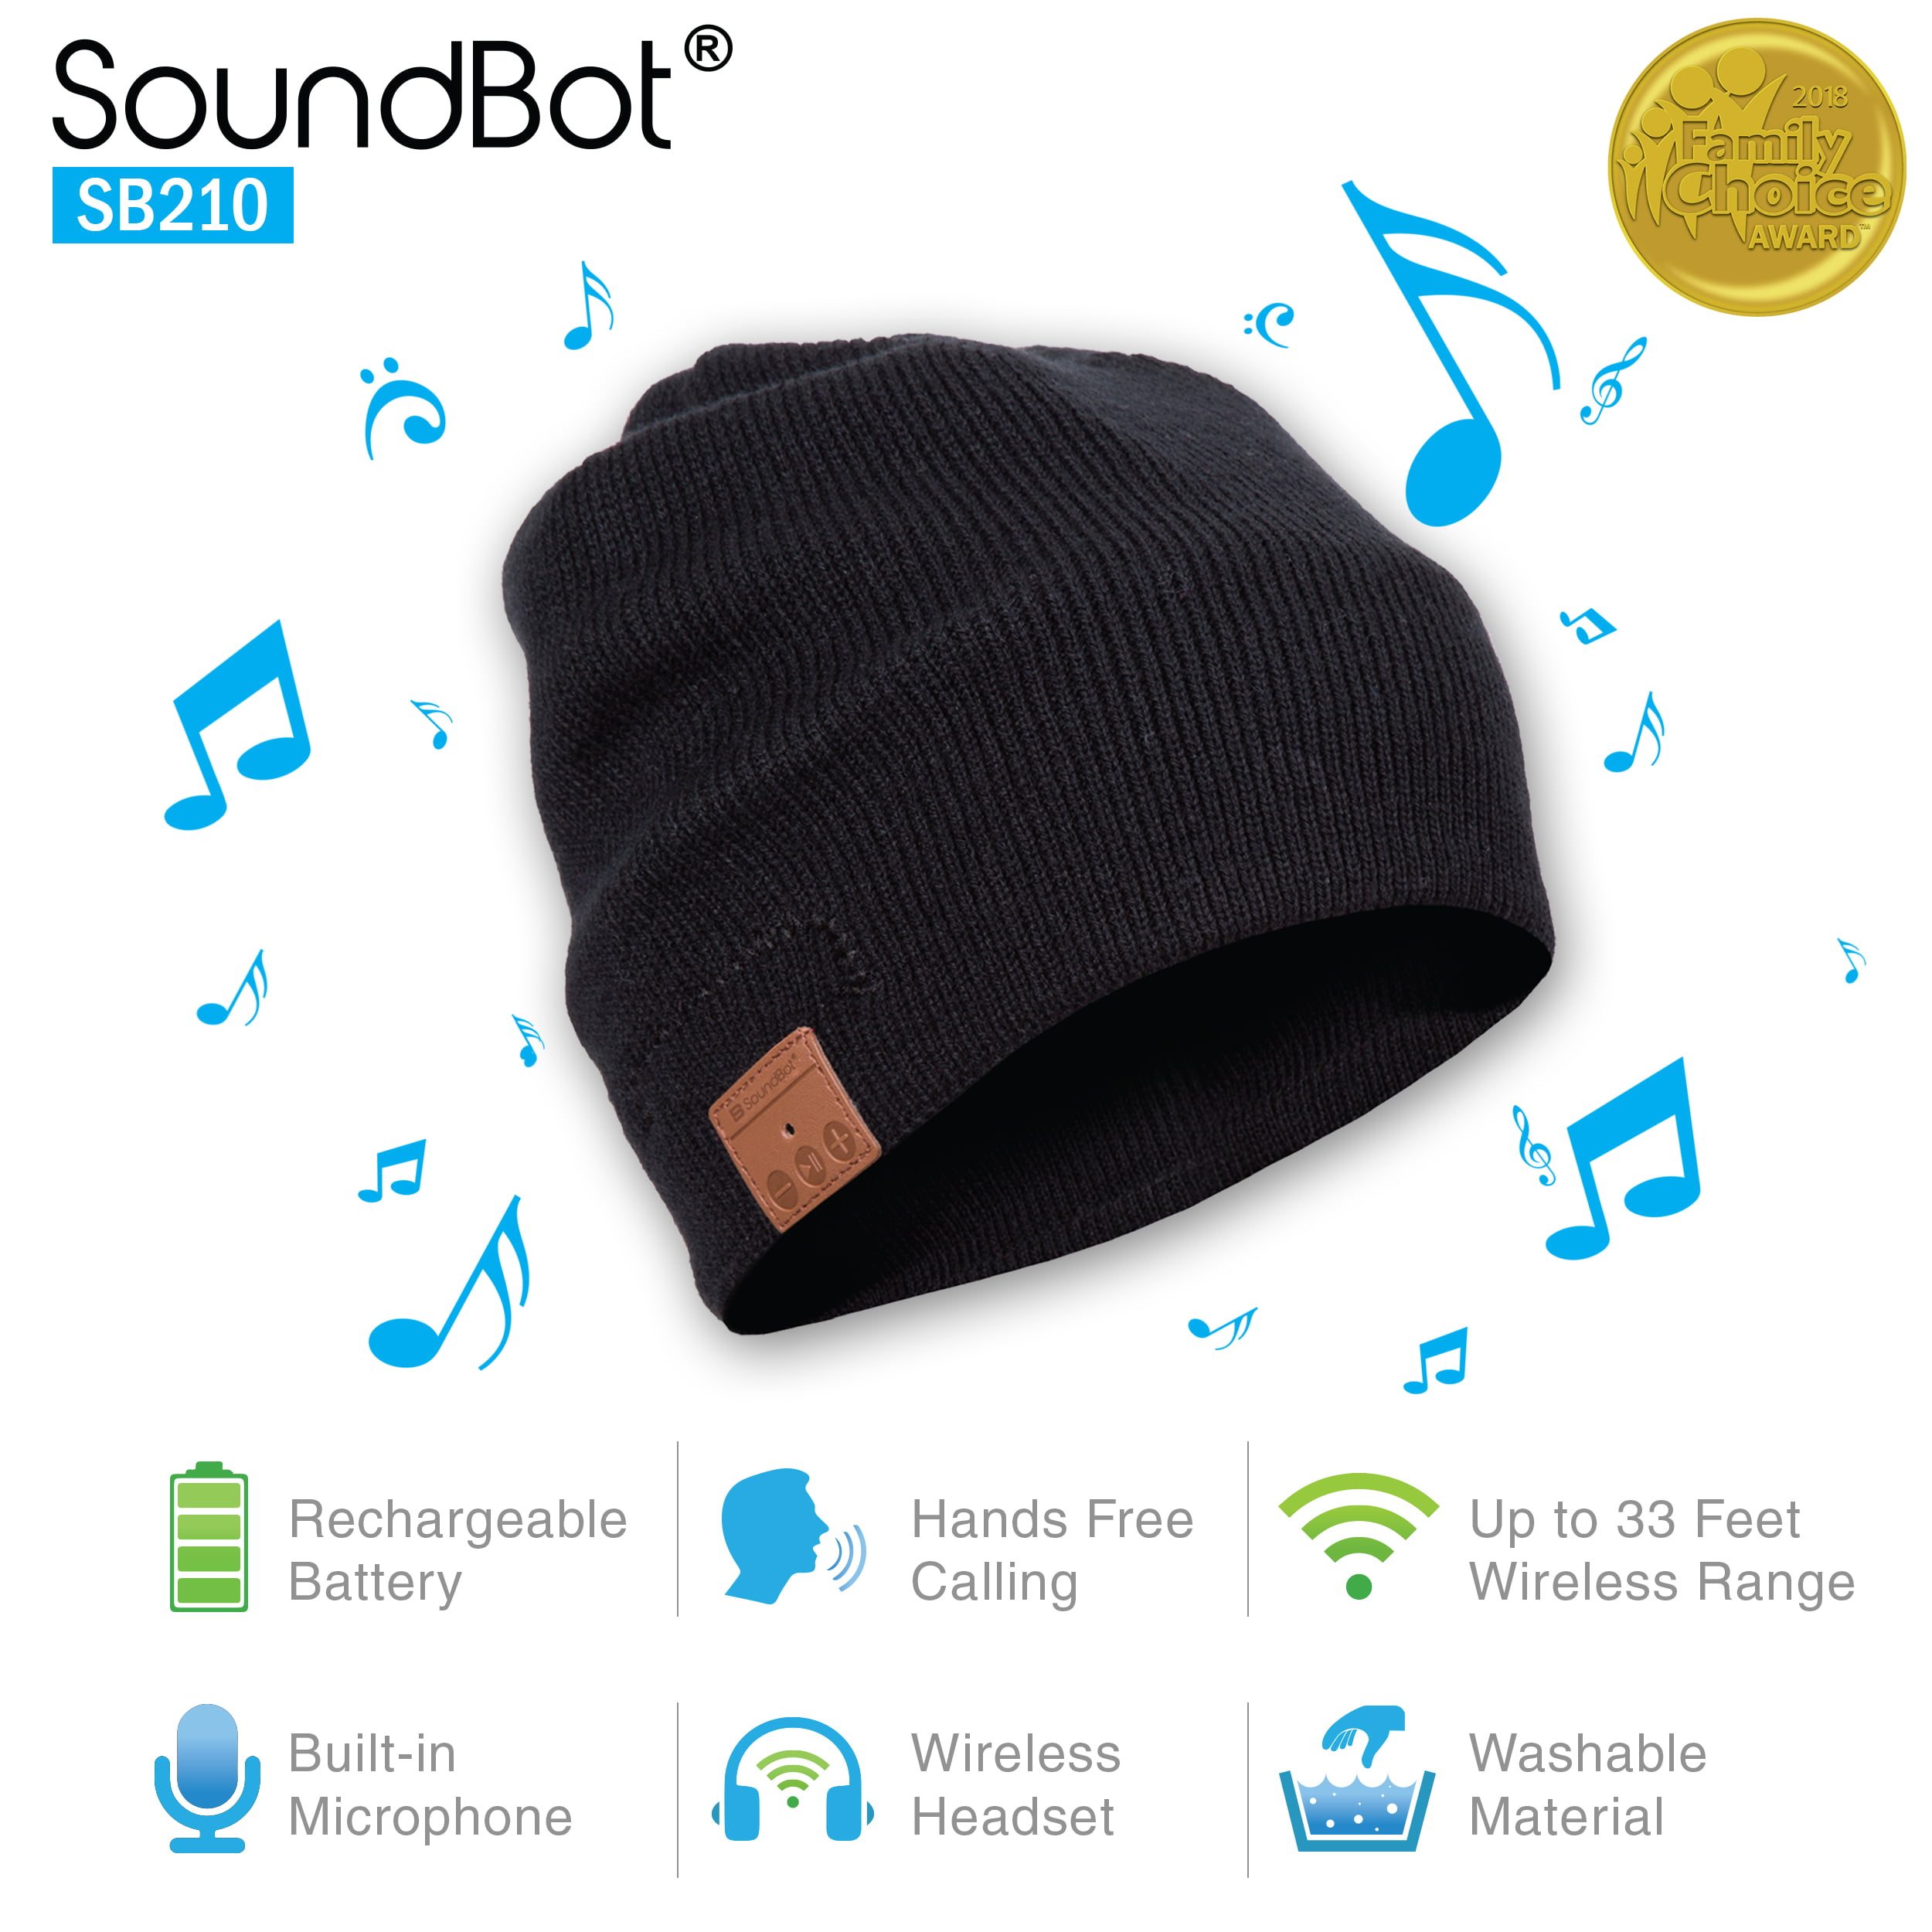 87f297311e3 SoundBot SB210 HD Stereo Bluetooth 4.1 Wireless Smart Beanie Musical Knit  Headset with Hands-Free Talking